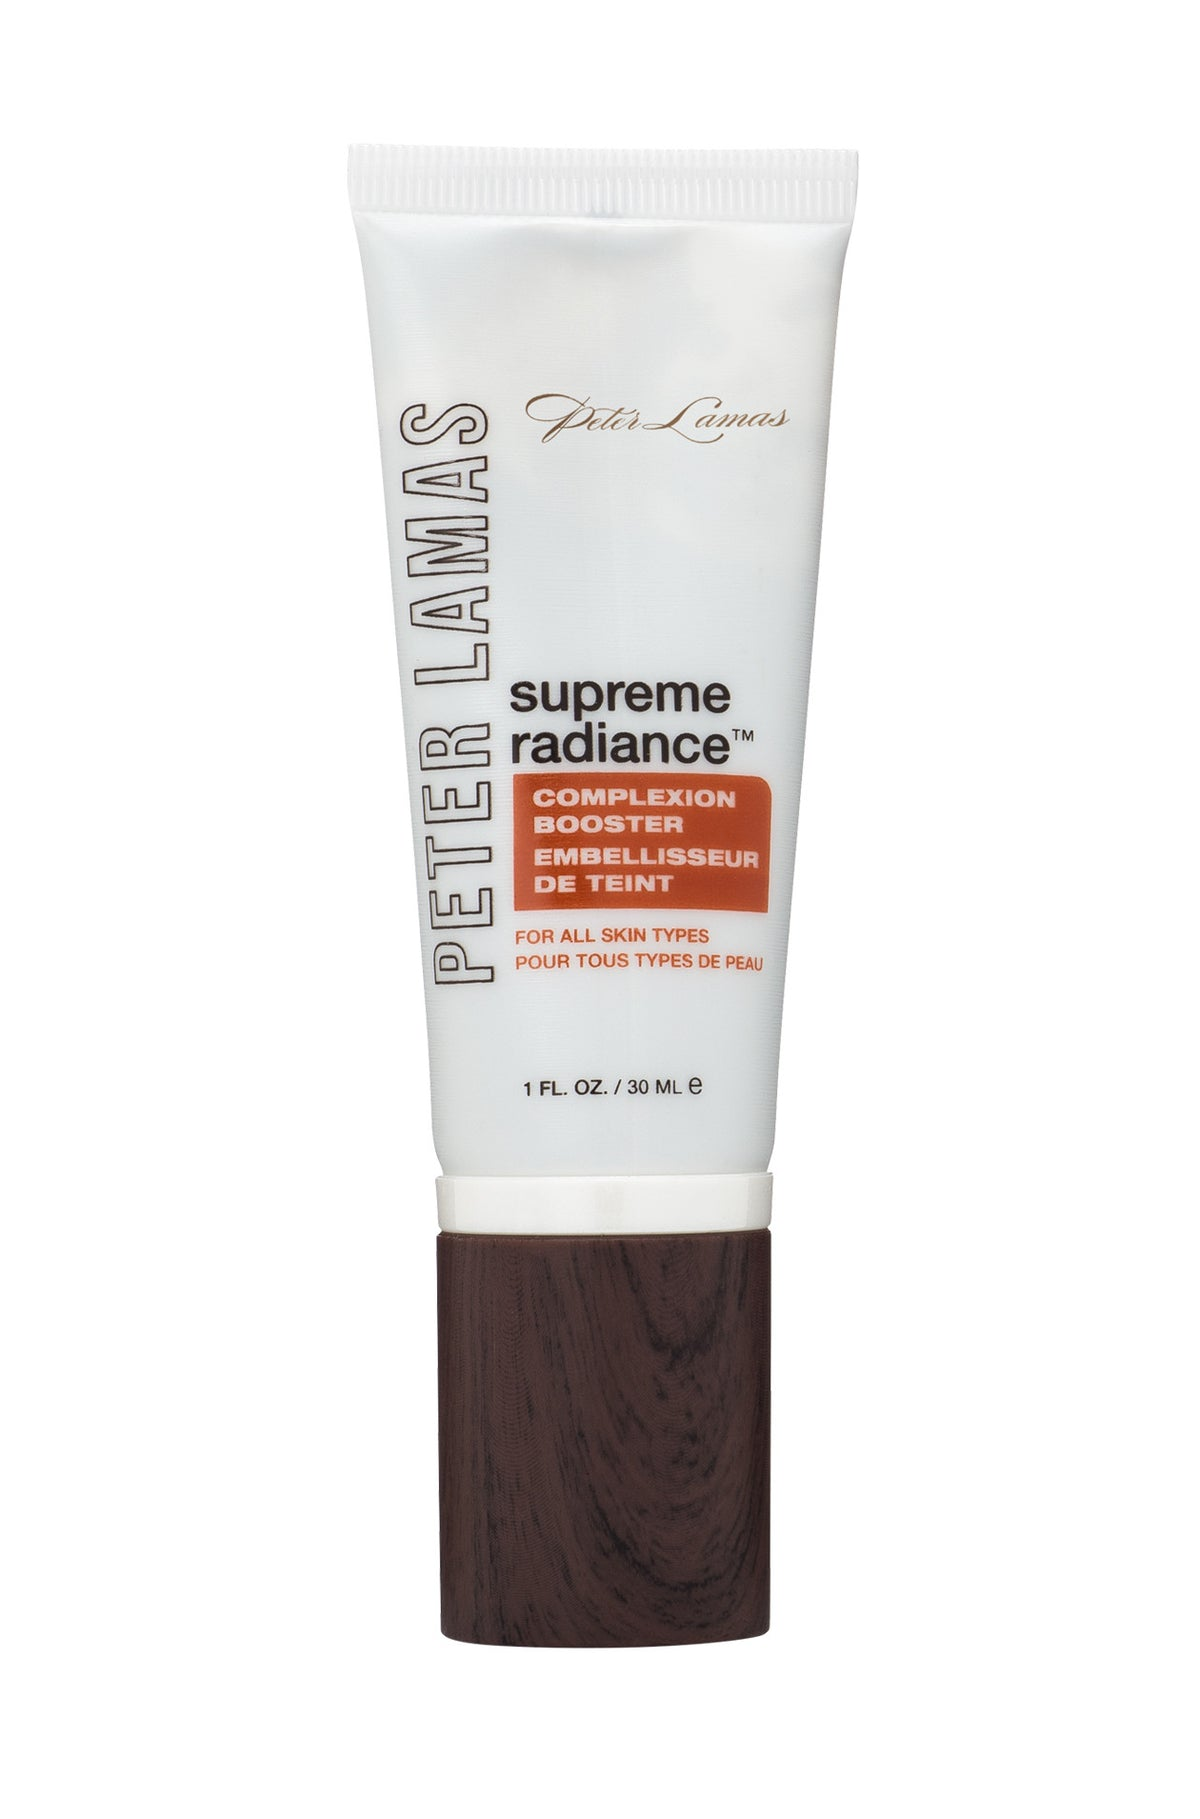 Supreme Radiance Complexion Booster